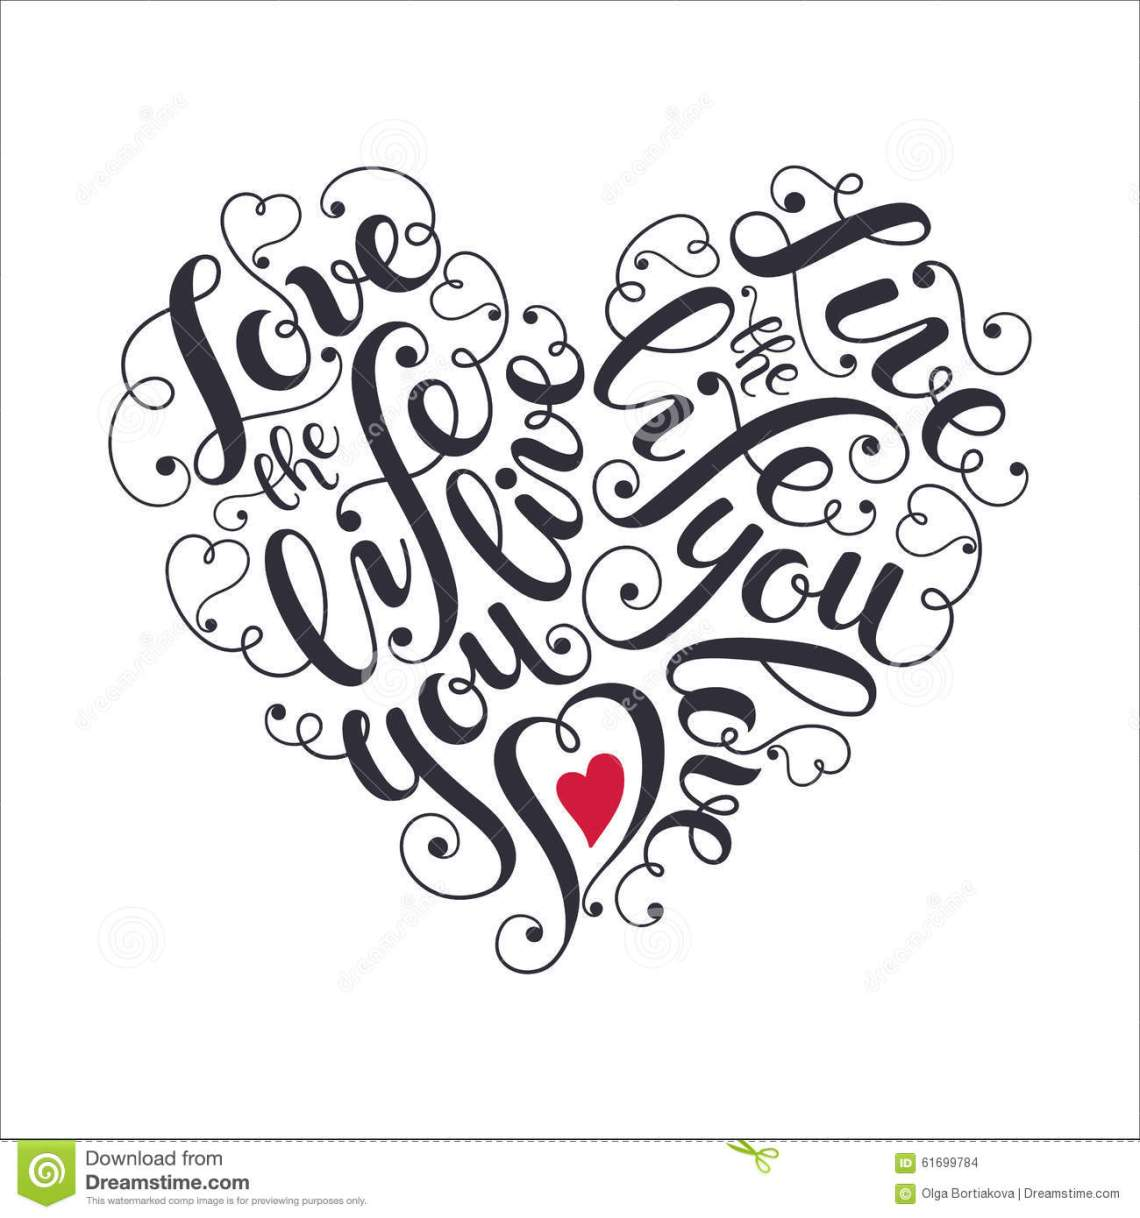 Download Inspiring Heart Shaped Poster Stock Vector - Image: 61699784